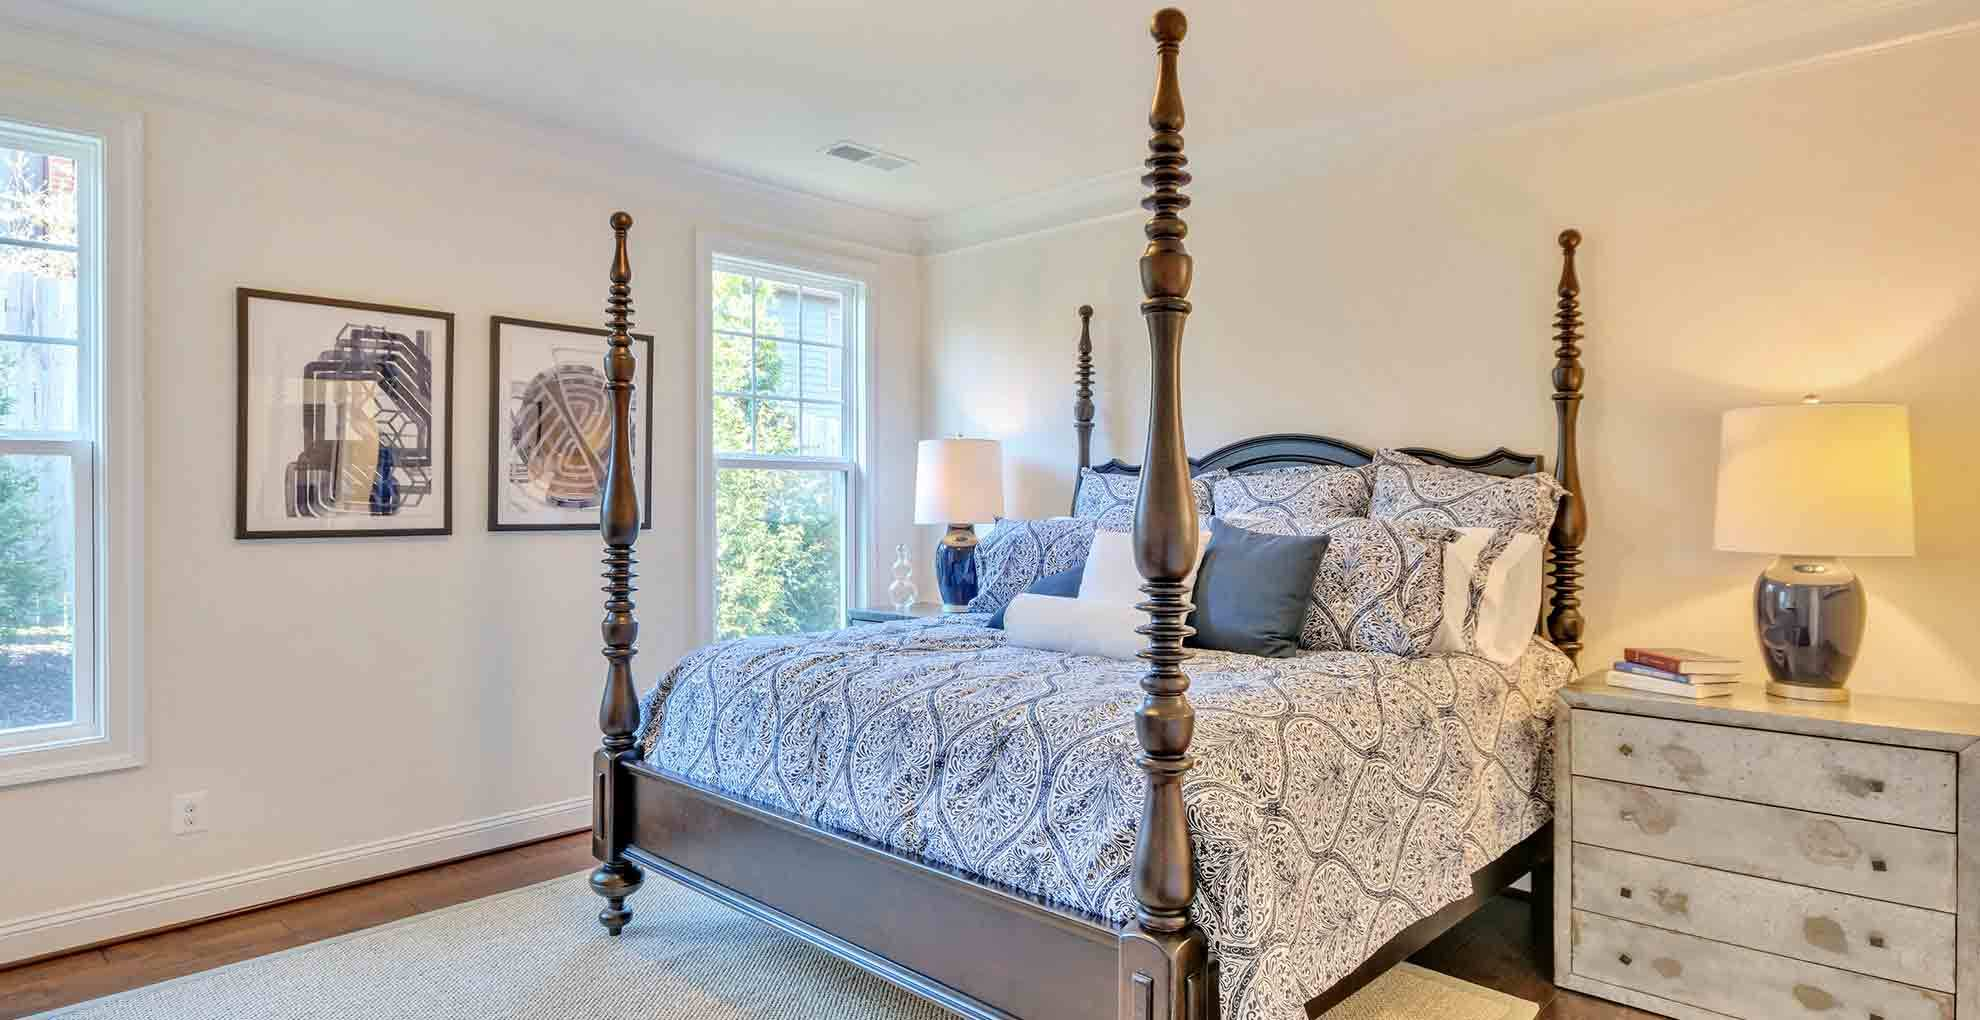 Bedroom featured in the Pickering By Stanley Martin Homes in Charlottesville, VA